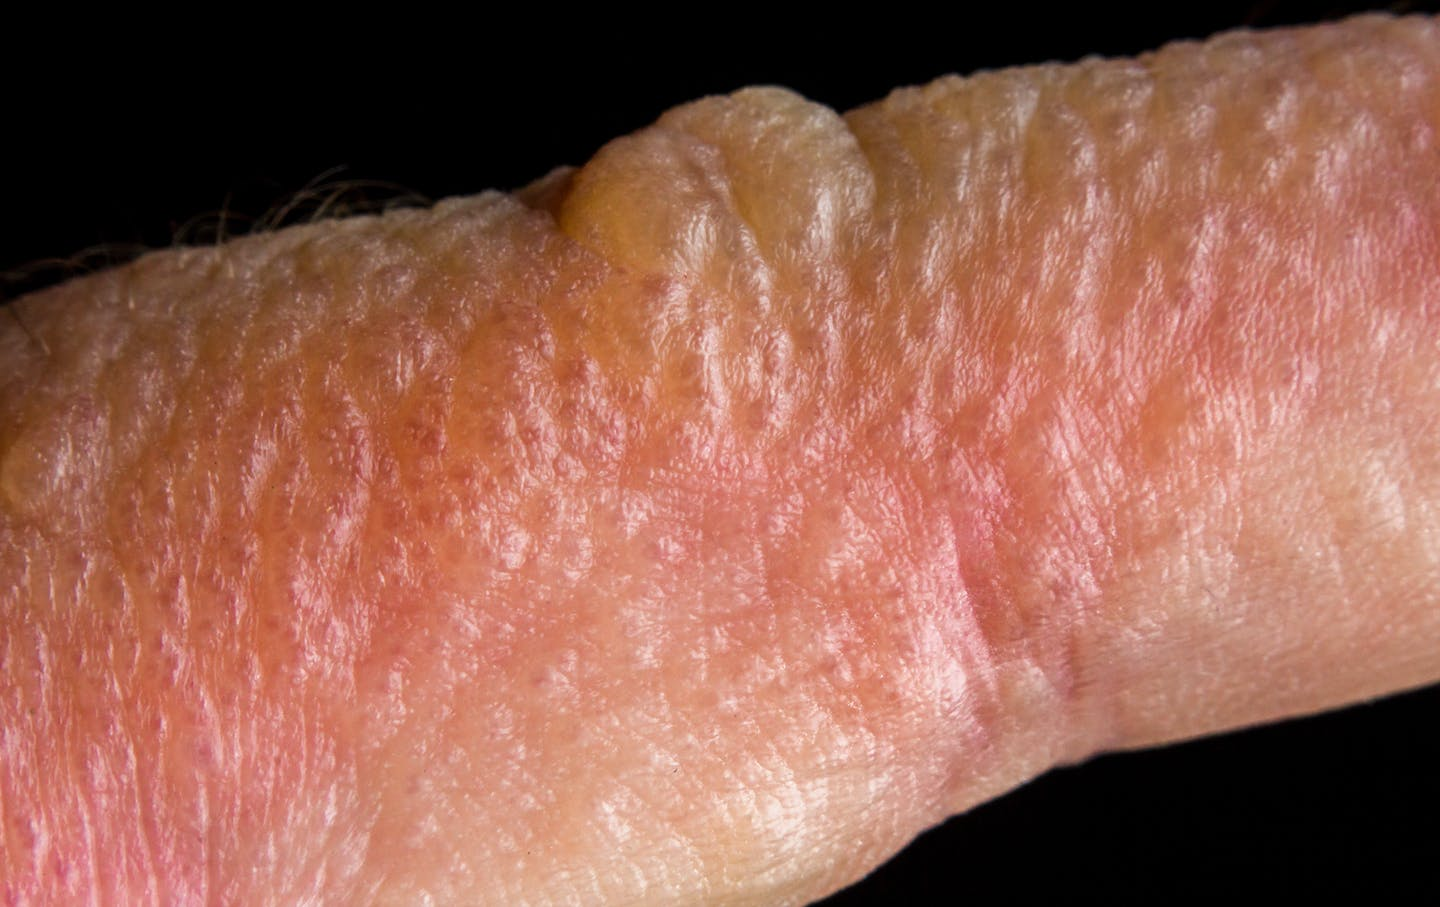 pink rash with blisters on skin close up